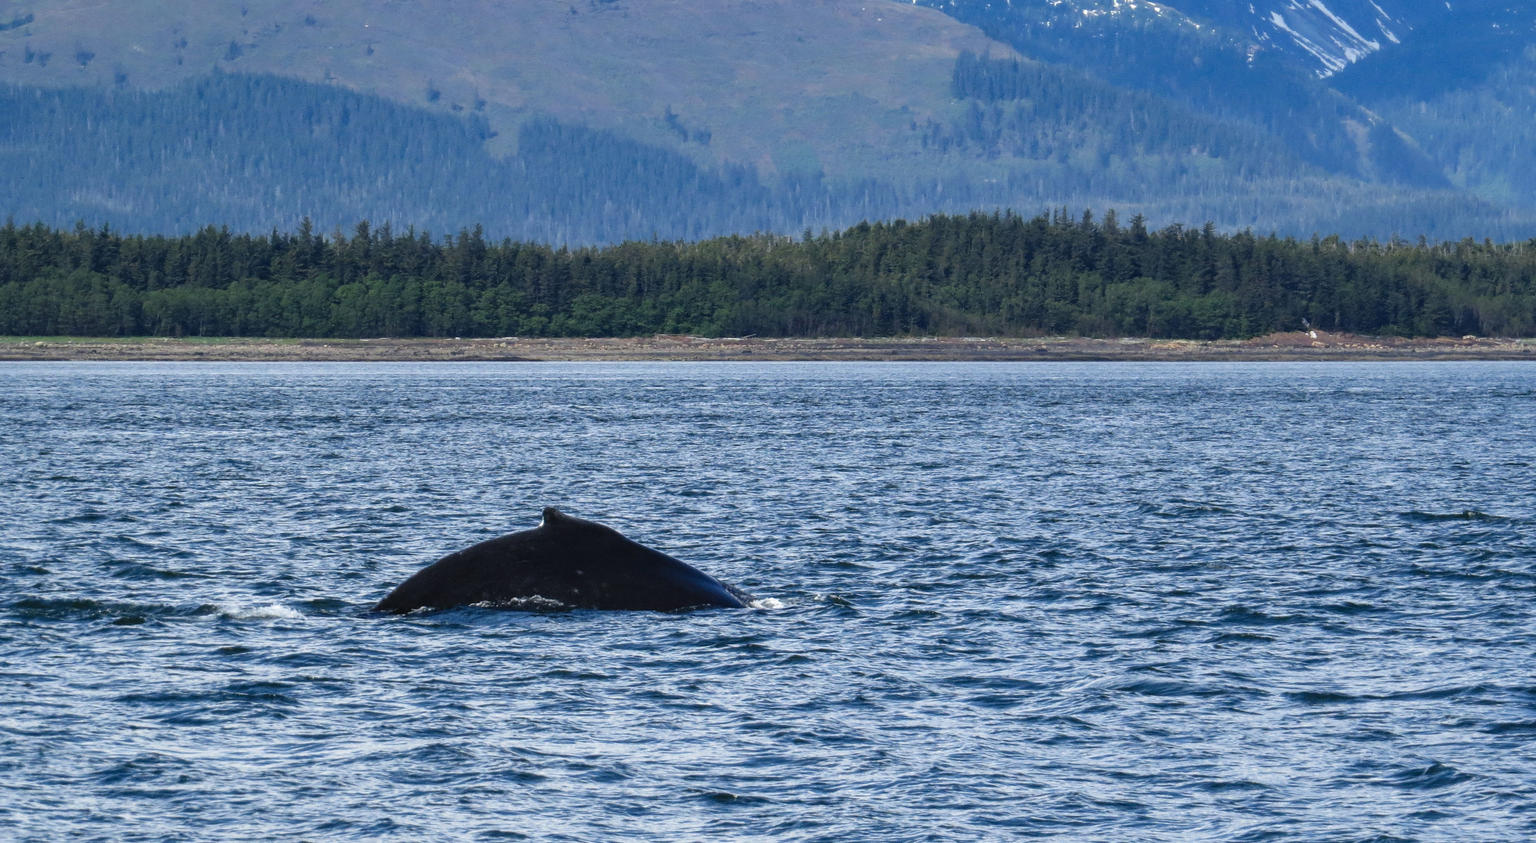 Whale Watch and Mendenhall Glacier Combo Tour